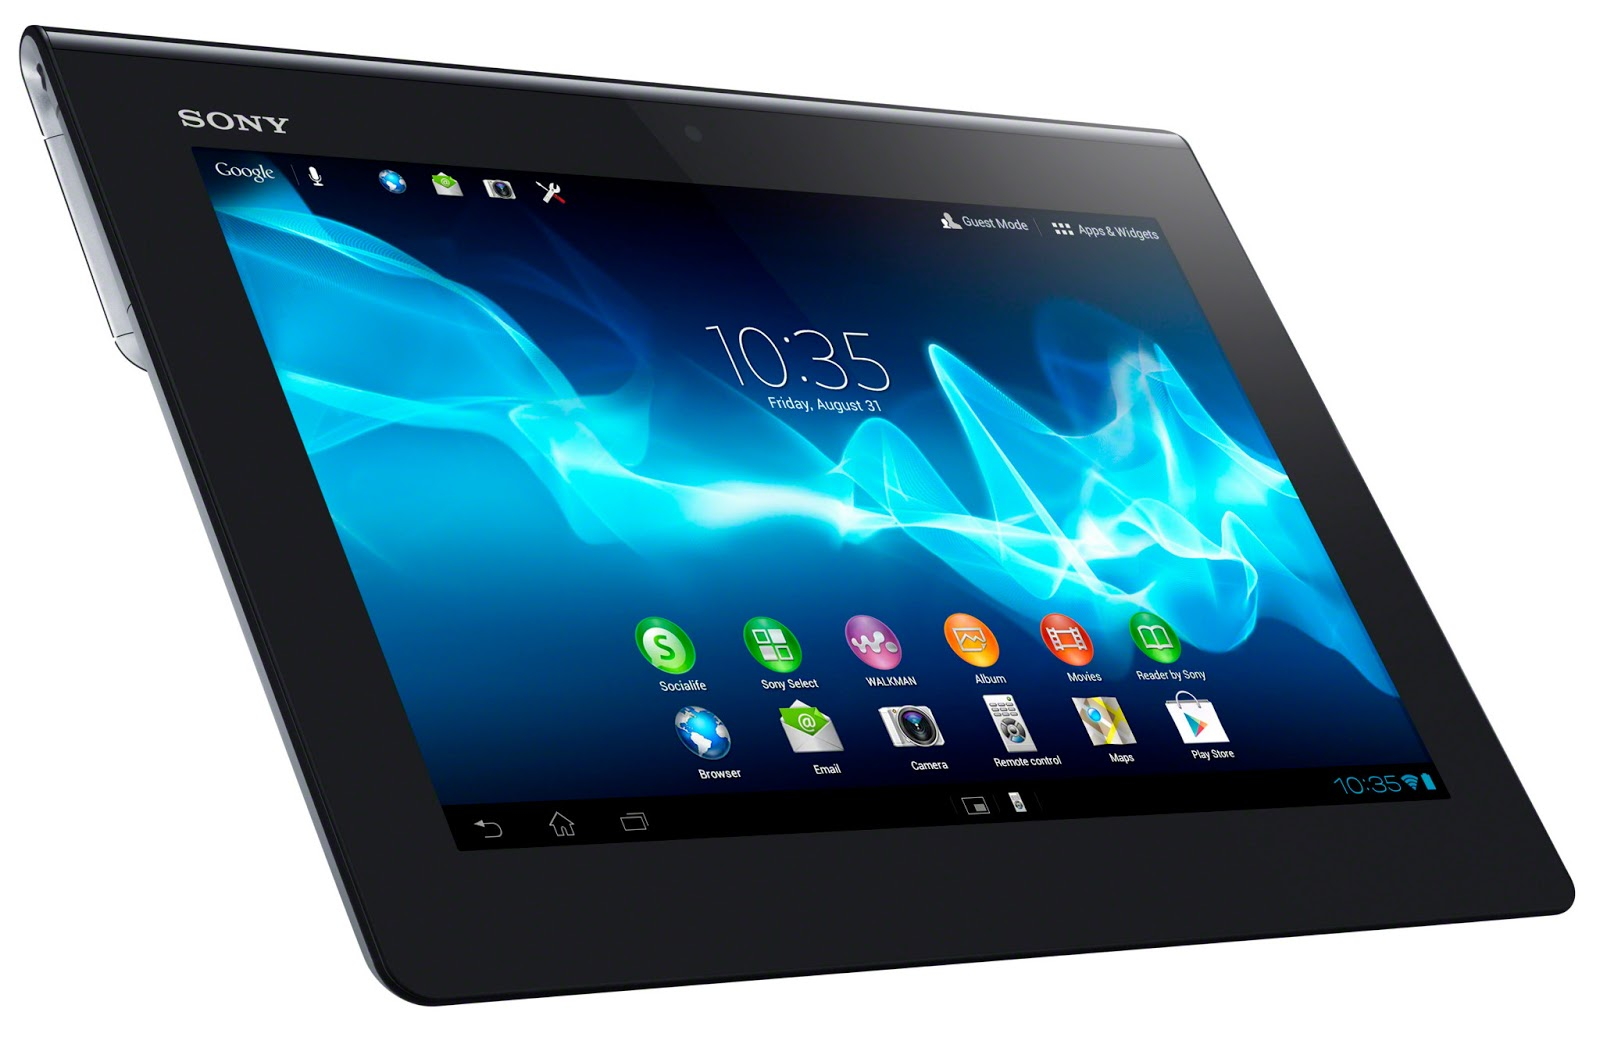 daftar harga tablet pc terbaru 2013 2016 news and events broadcast